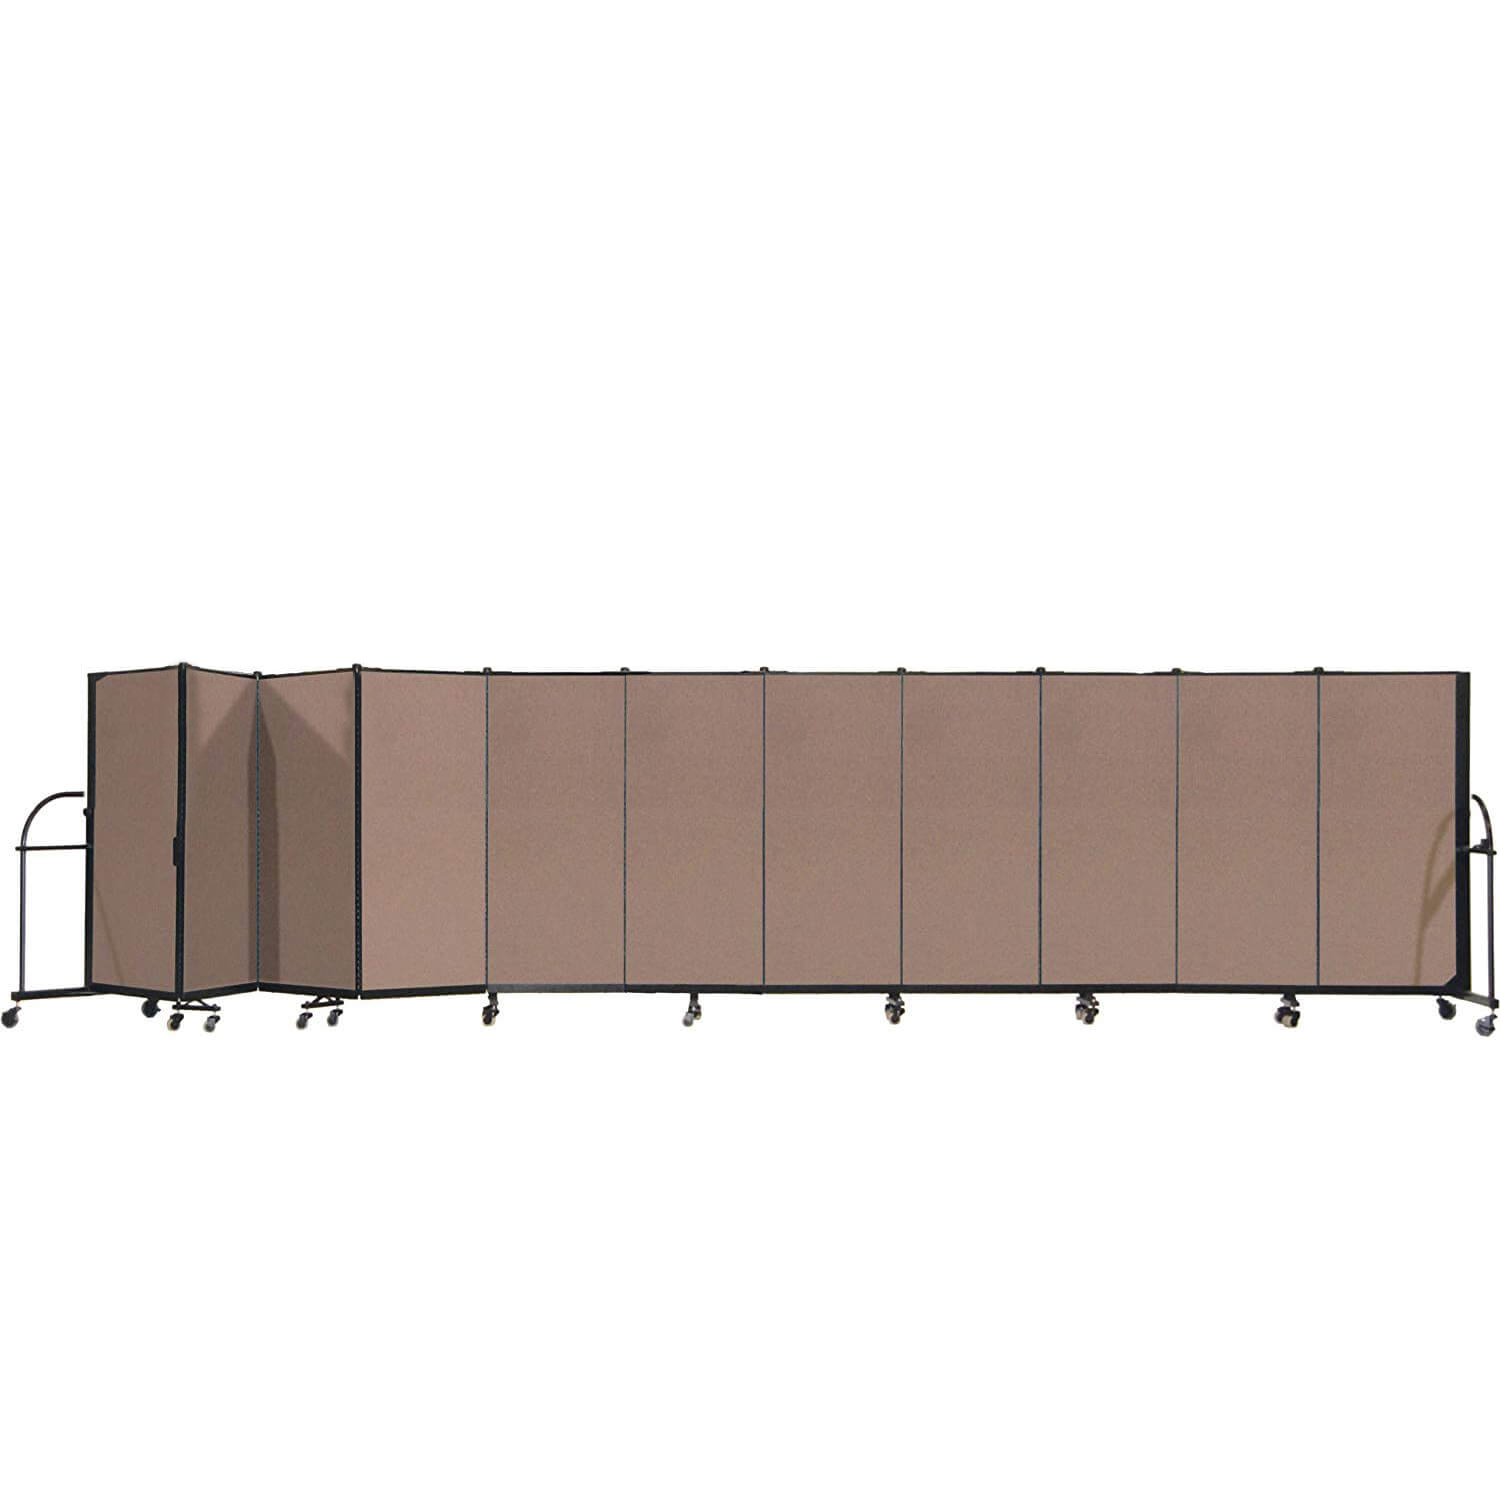 Panel room dividers CUB QSCFSL4011DO RCS 1 2